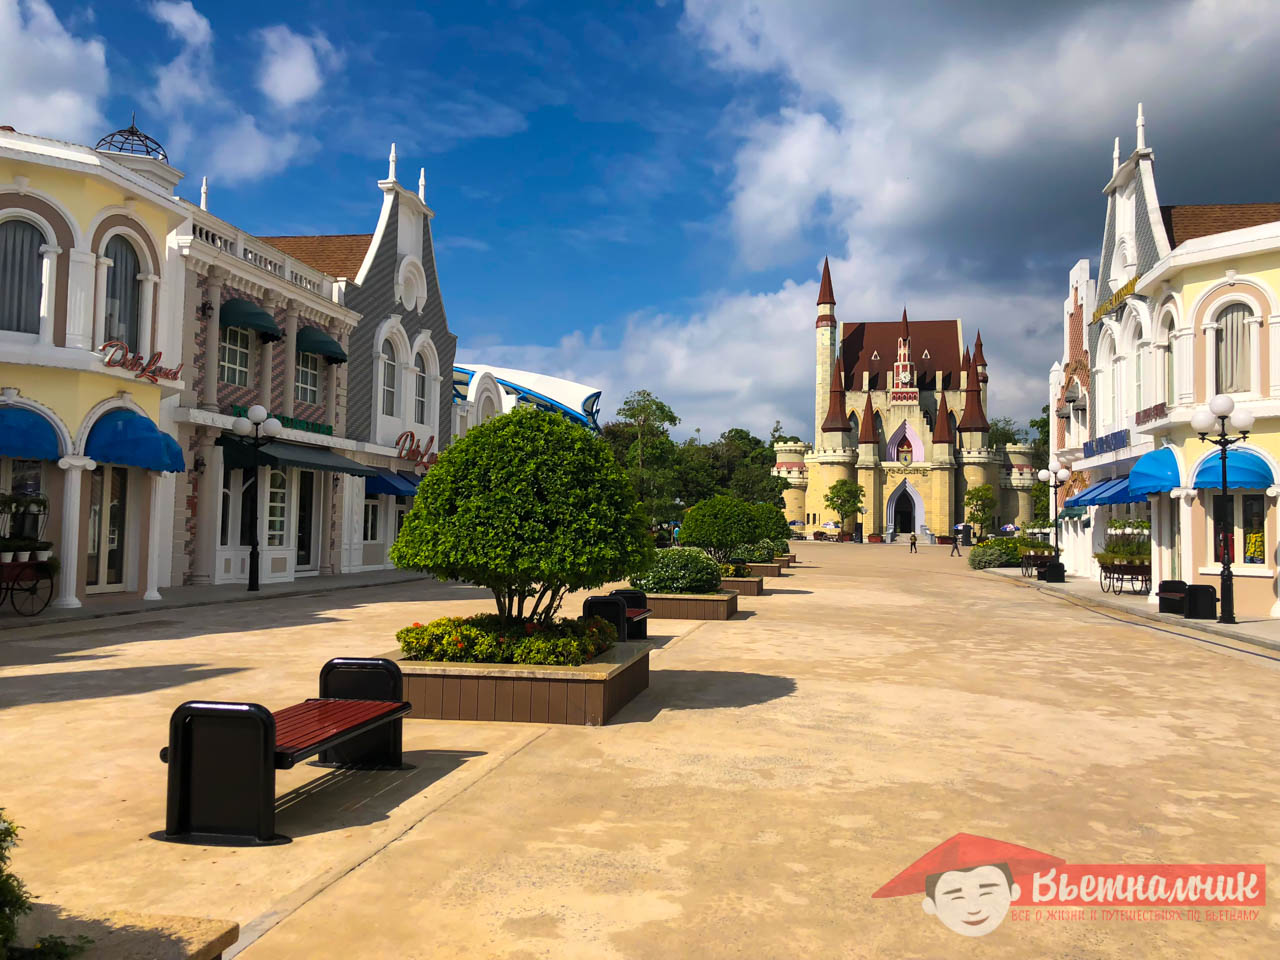 Cafes, restaurants and souvenir shops in Vinpearl Land (Phu Quoc)